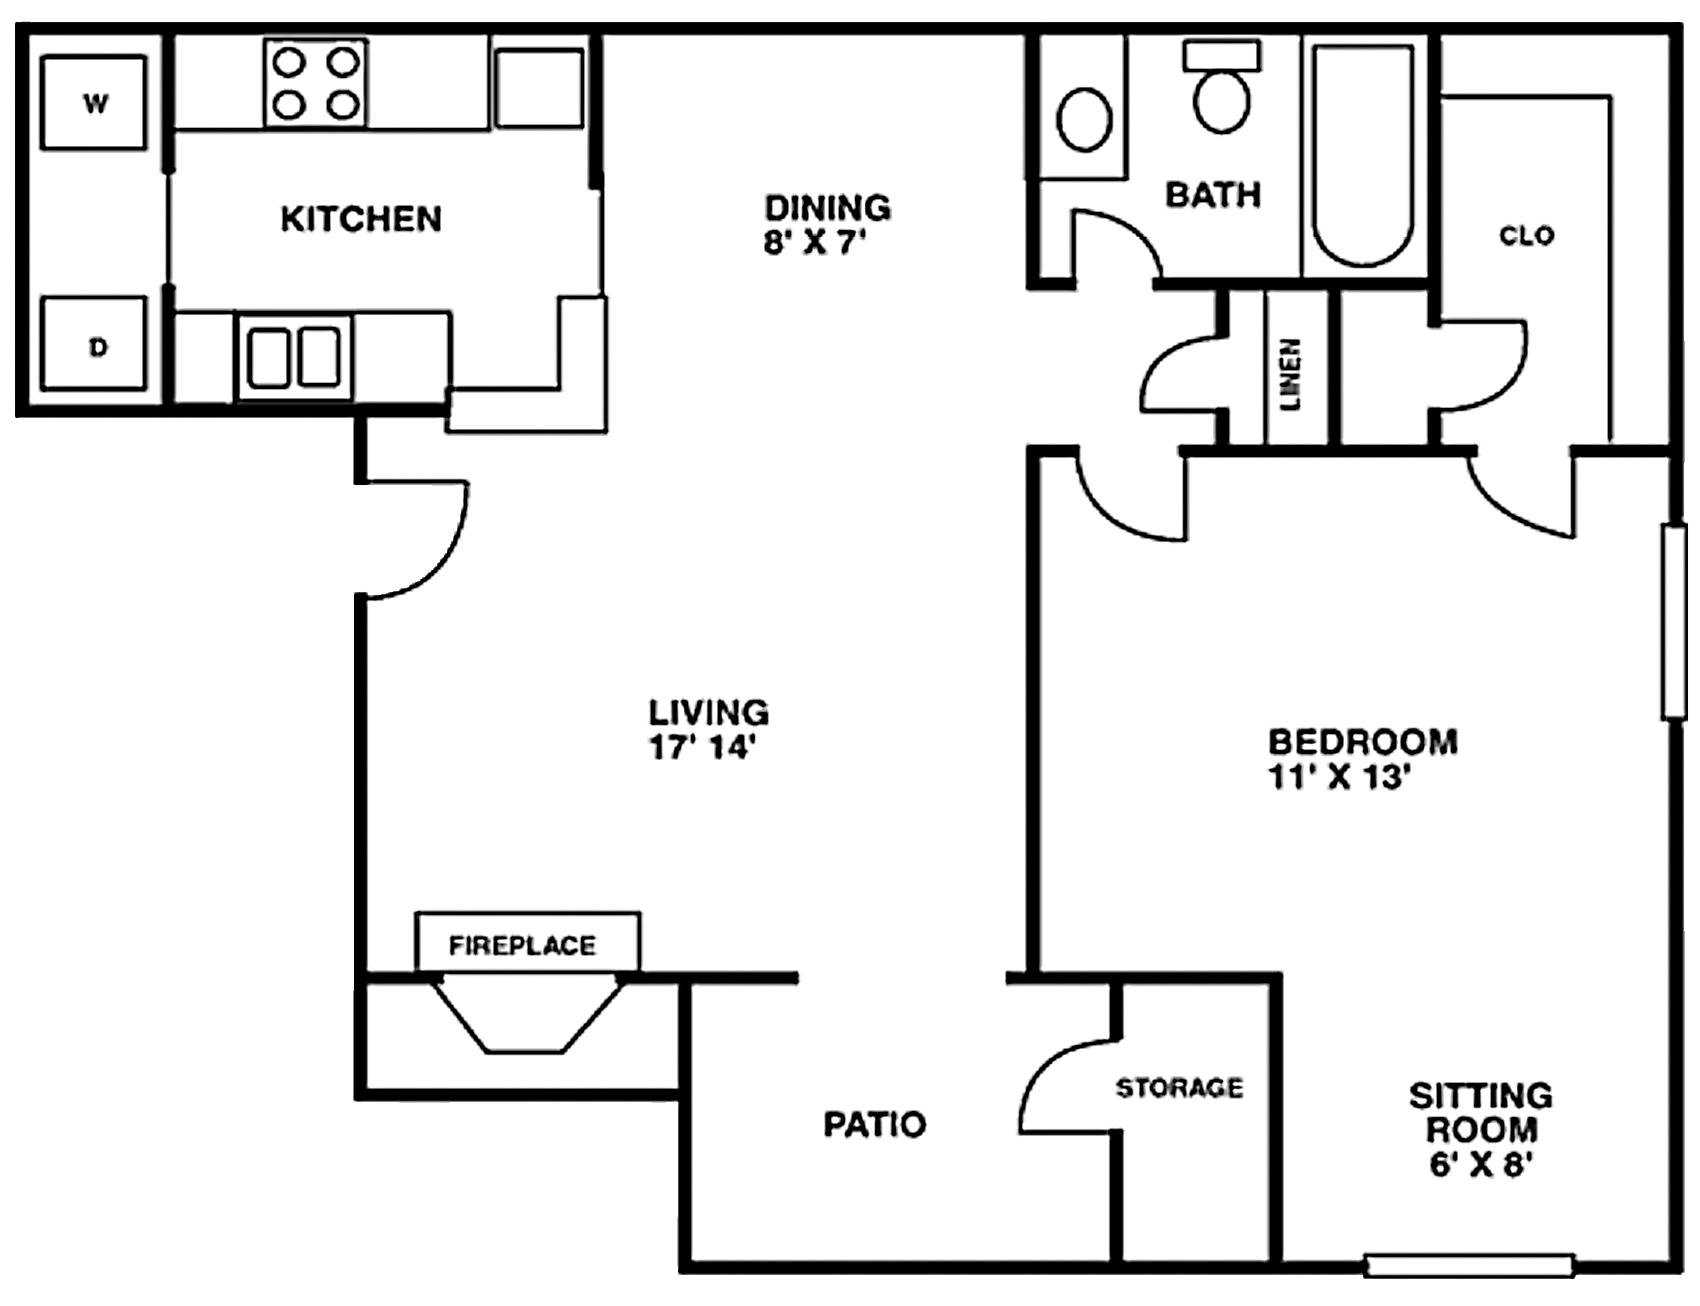 Crescent at Cityview Floor Plan 1 bed 1 bath - Houston Texas